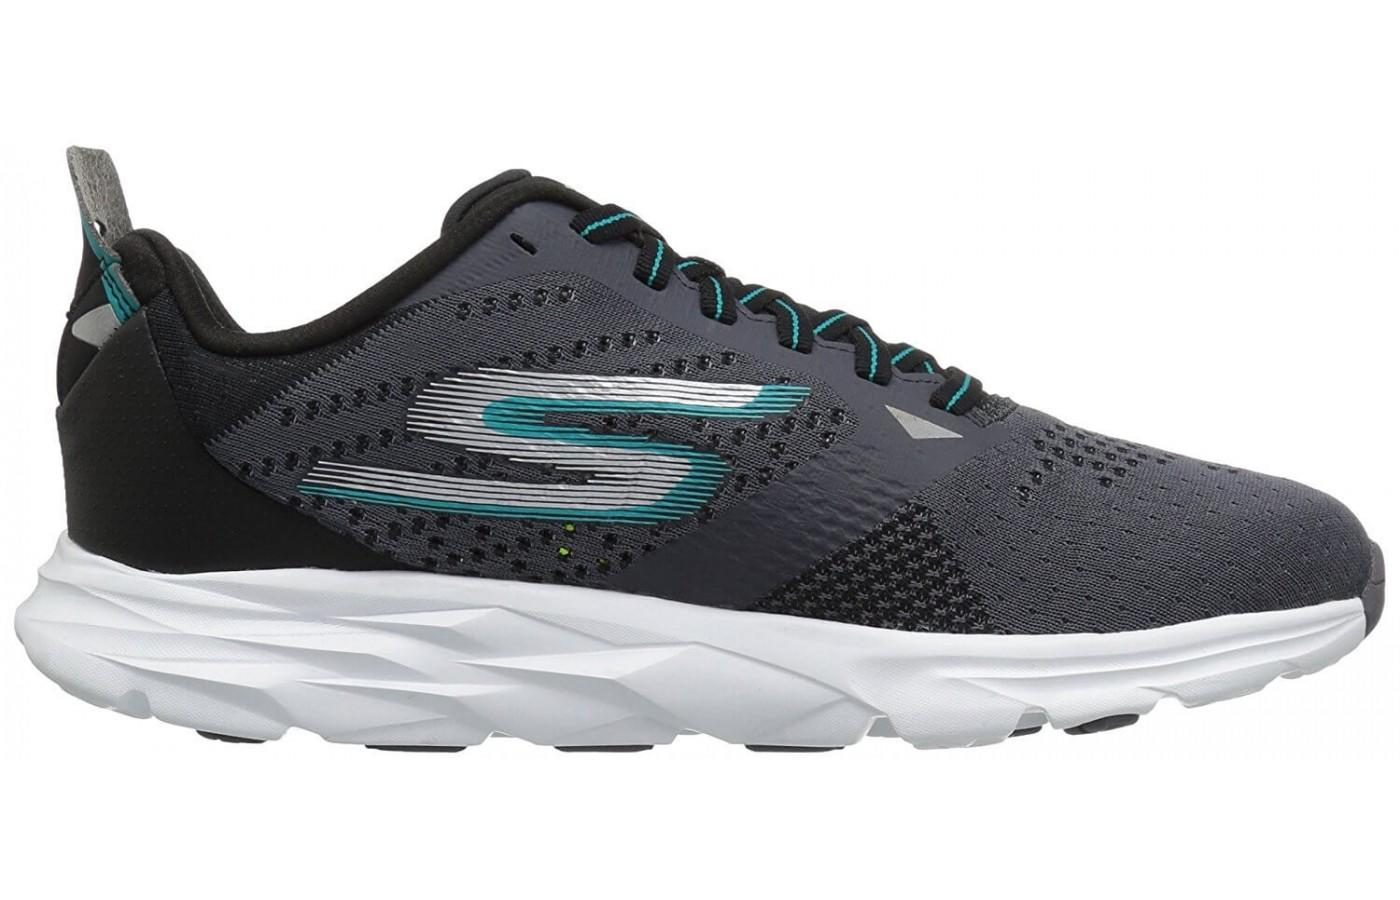 the Skecher GOrun Ride 6 has a subtle low-profile style